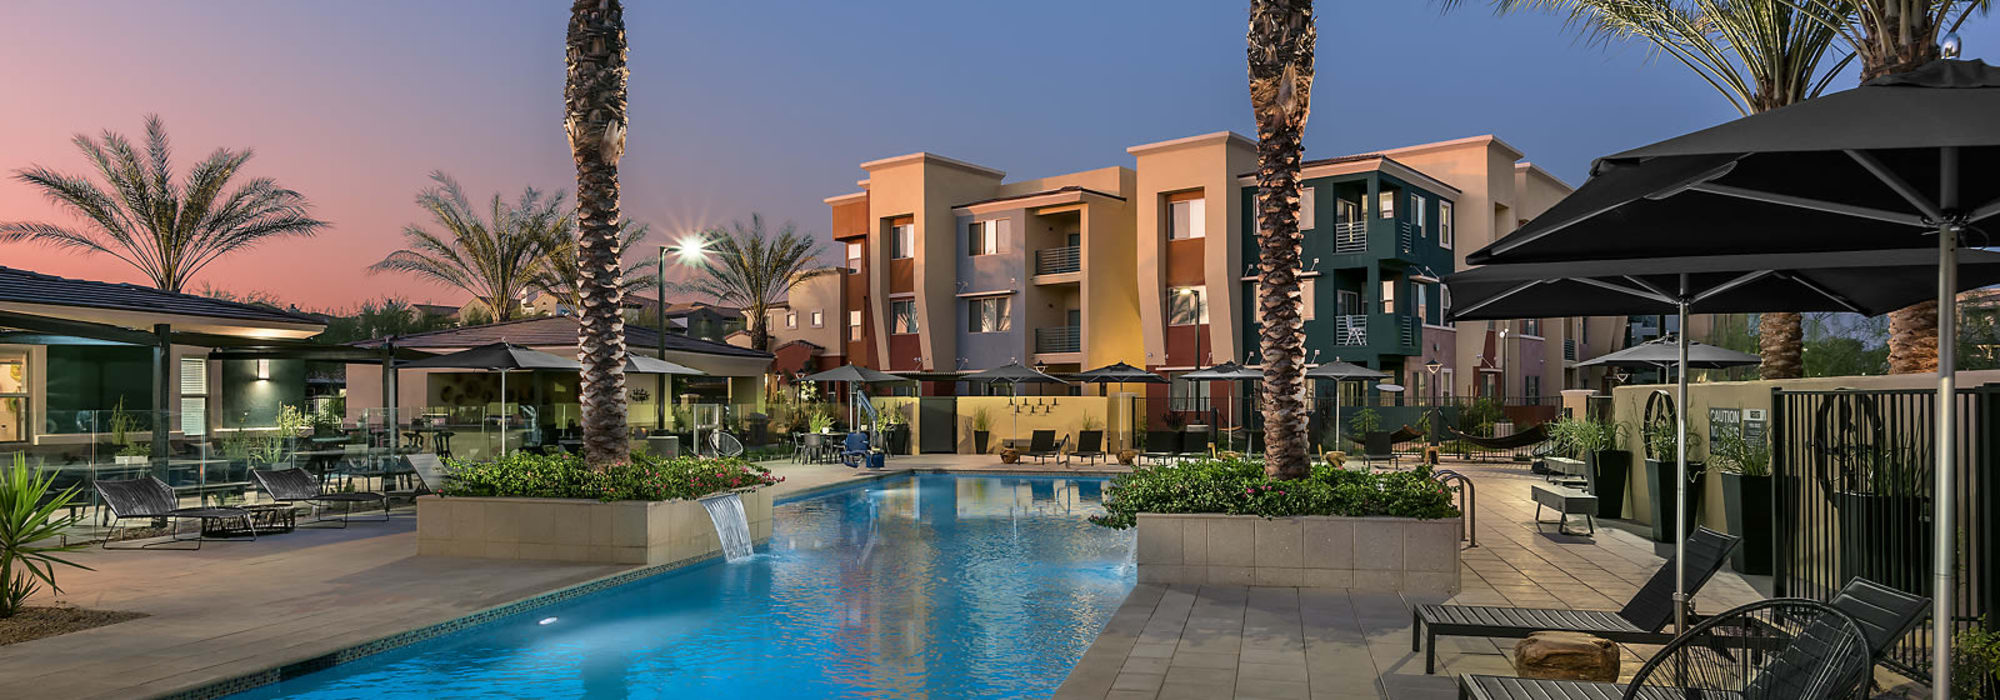 Sparkling blue pool at Villa Vita Apartments in Peoria, Arizona